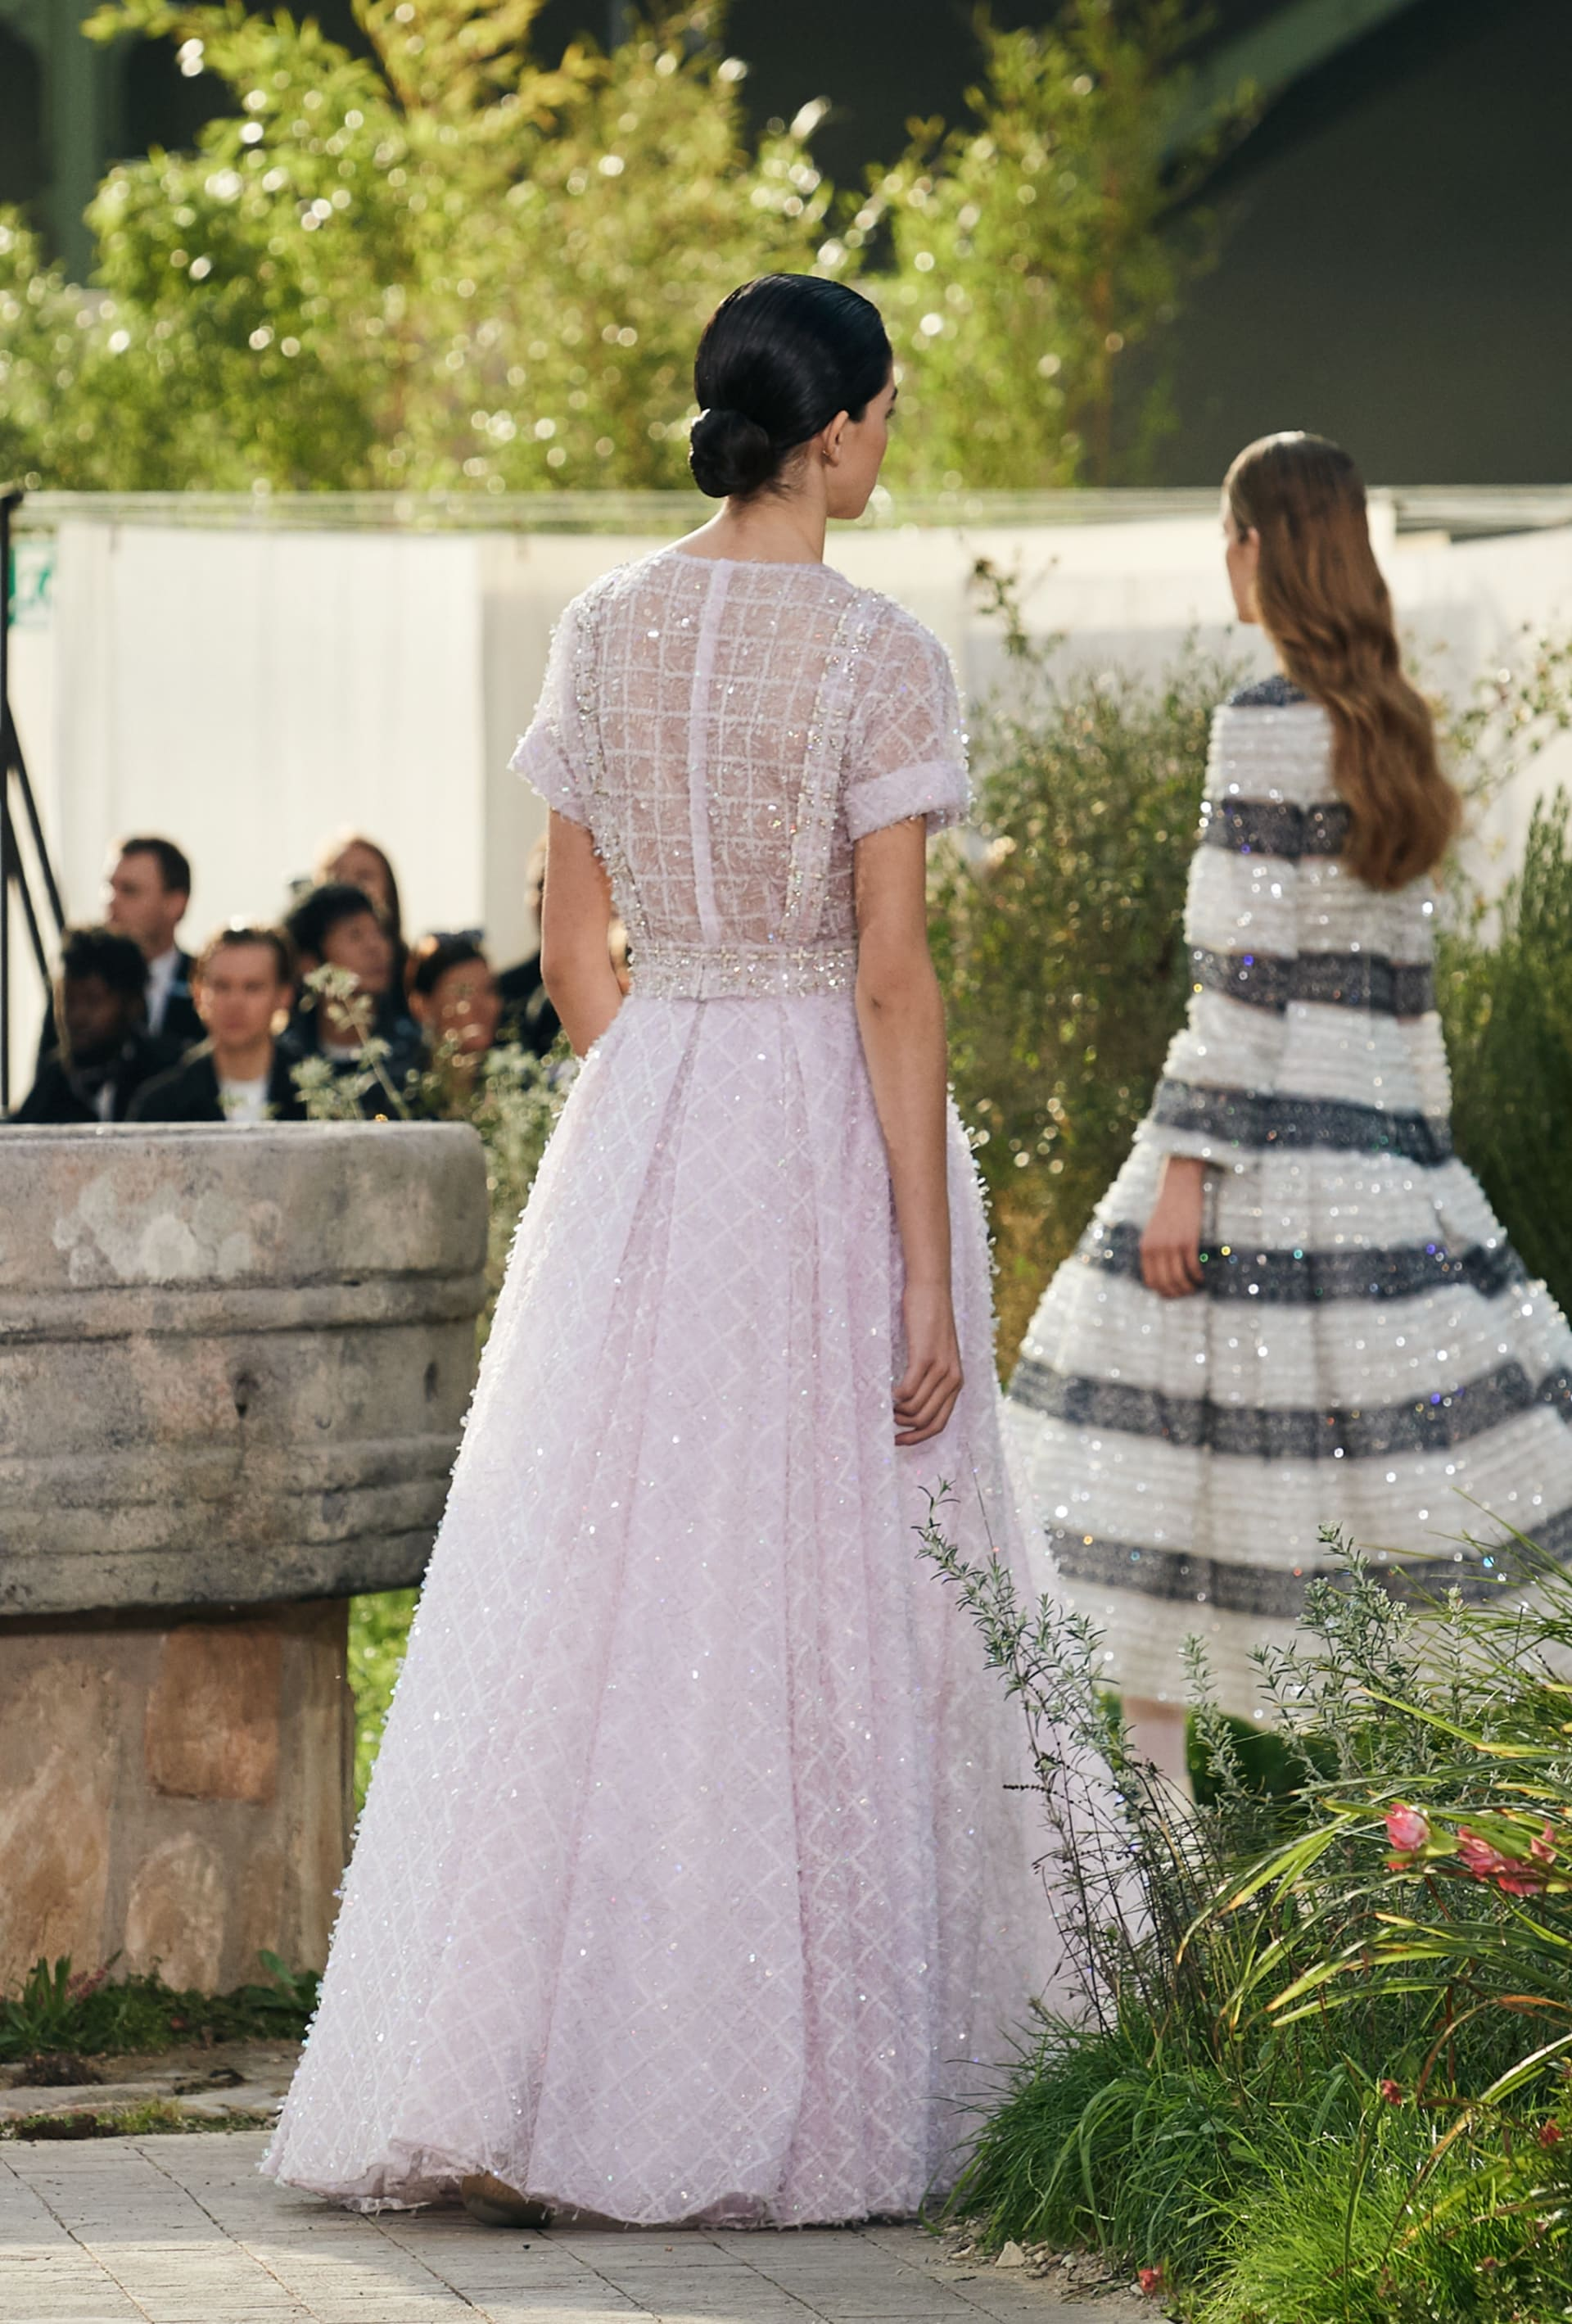 View 5 - Look 47 - Spring-Summer 2020 Haute Couture - see full sized version